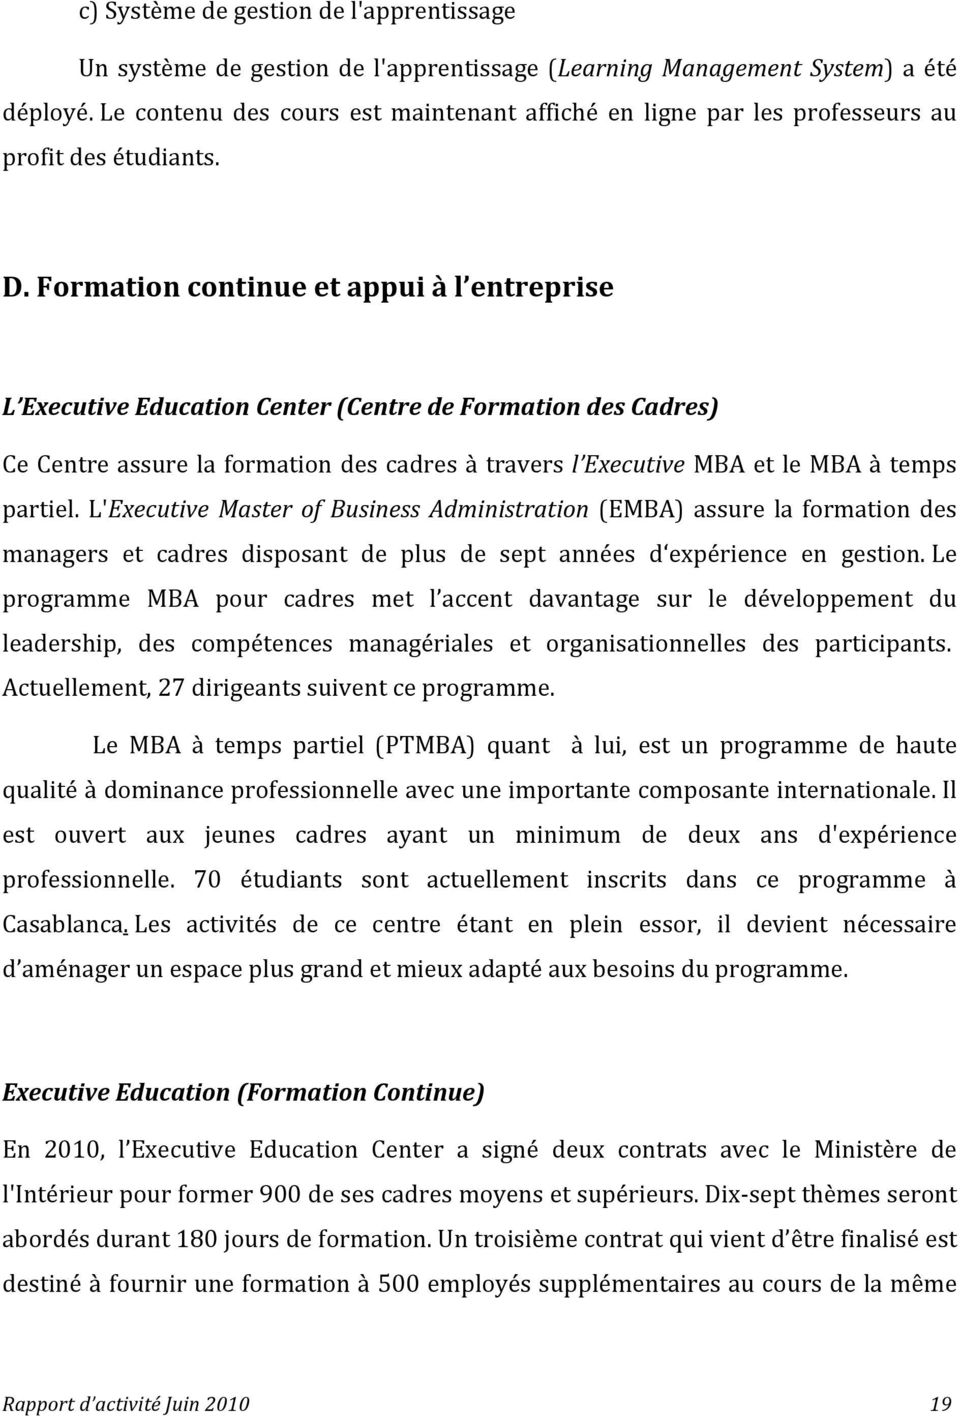 Formationcontinueetappuiàl entreprise L ExecutiveEducationCenter(CentredeFormationdesCadres) CeCentreassurelaformationdescadresàtraversl ExecutiveMBAetleMBAàtemps partiel.